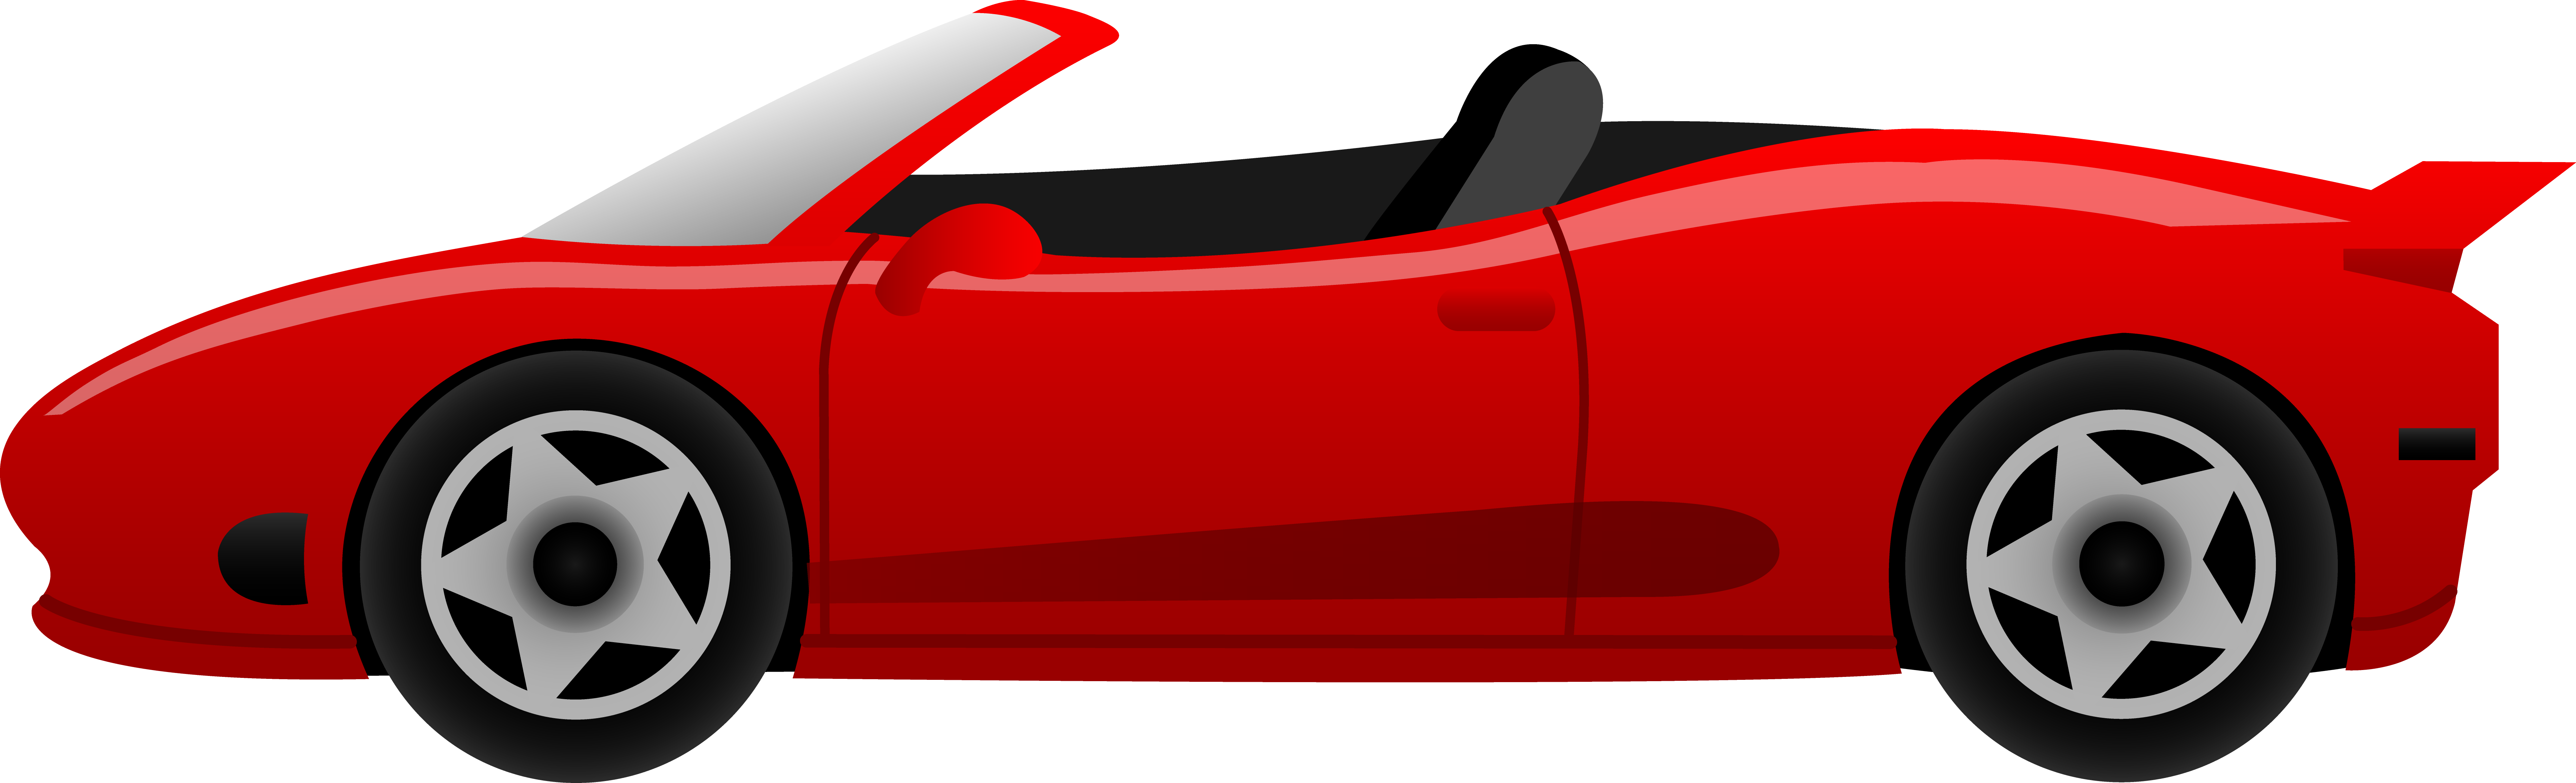 Red car clipart #10